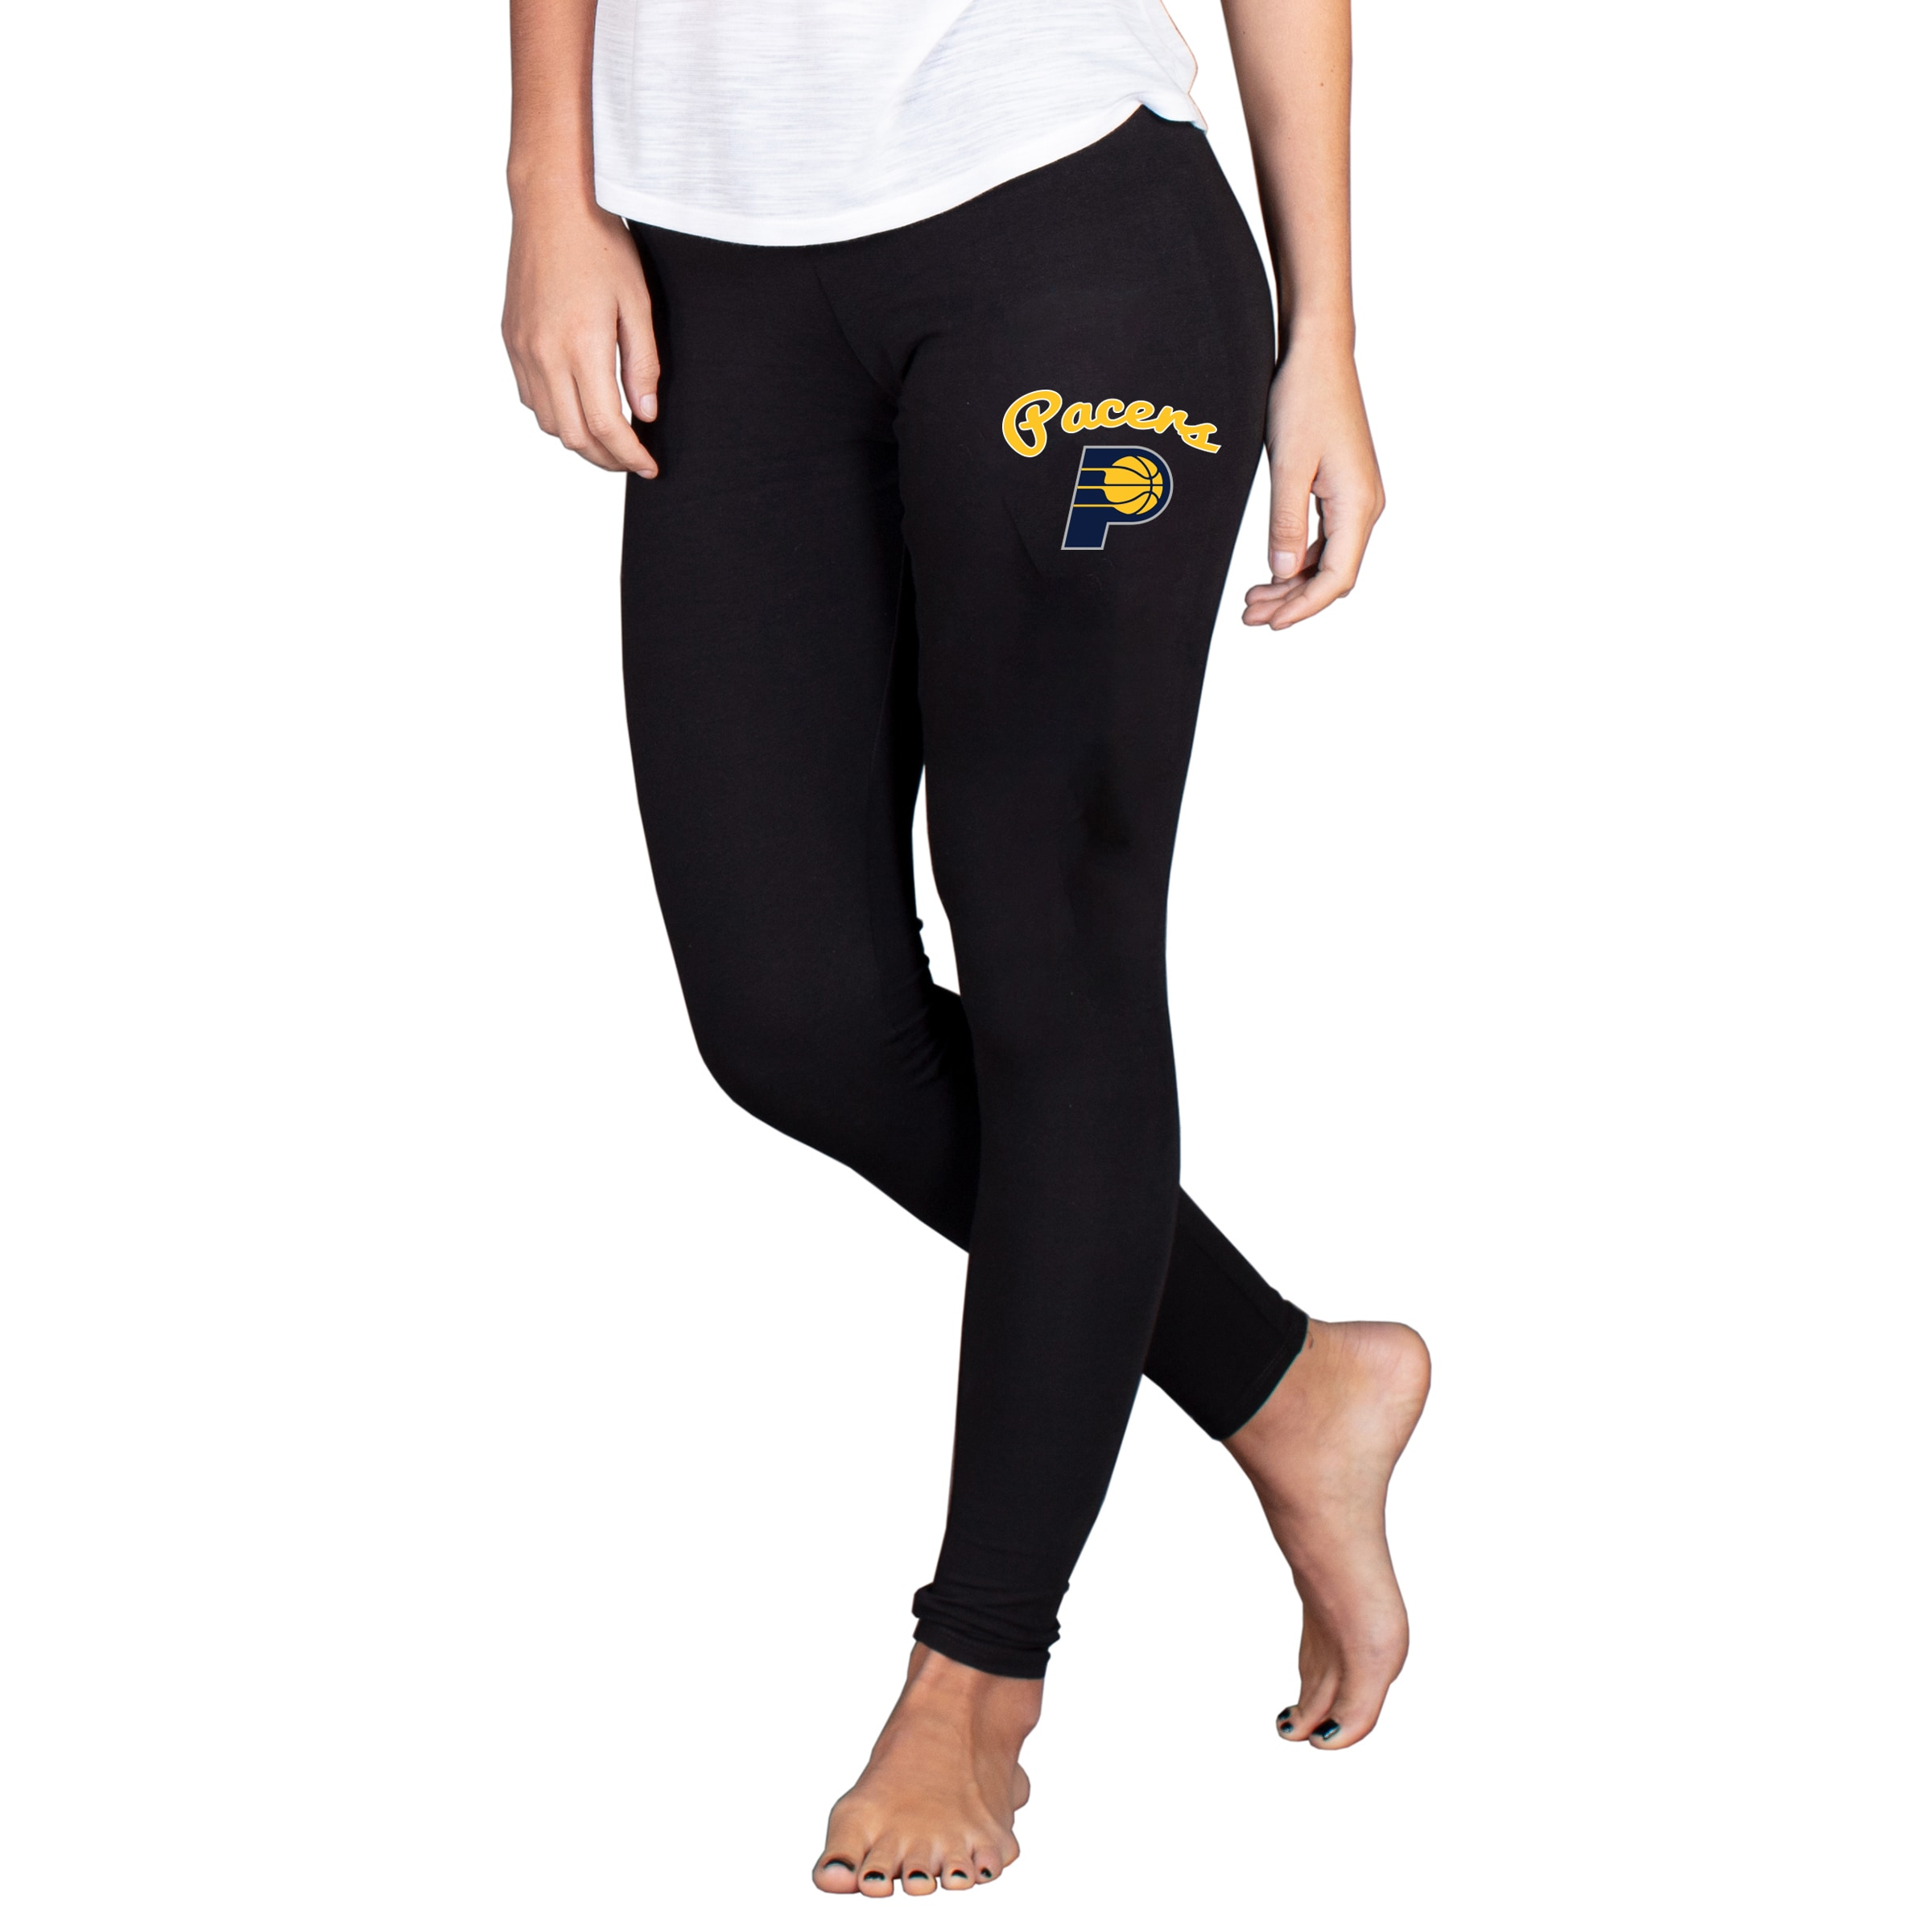 Indiana Pacers Concepts Sport Women's Fraction Leggings - Black